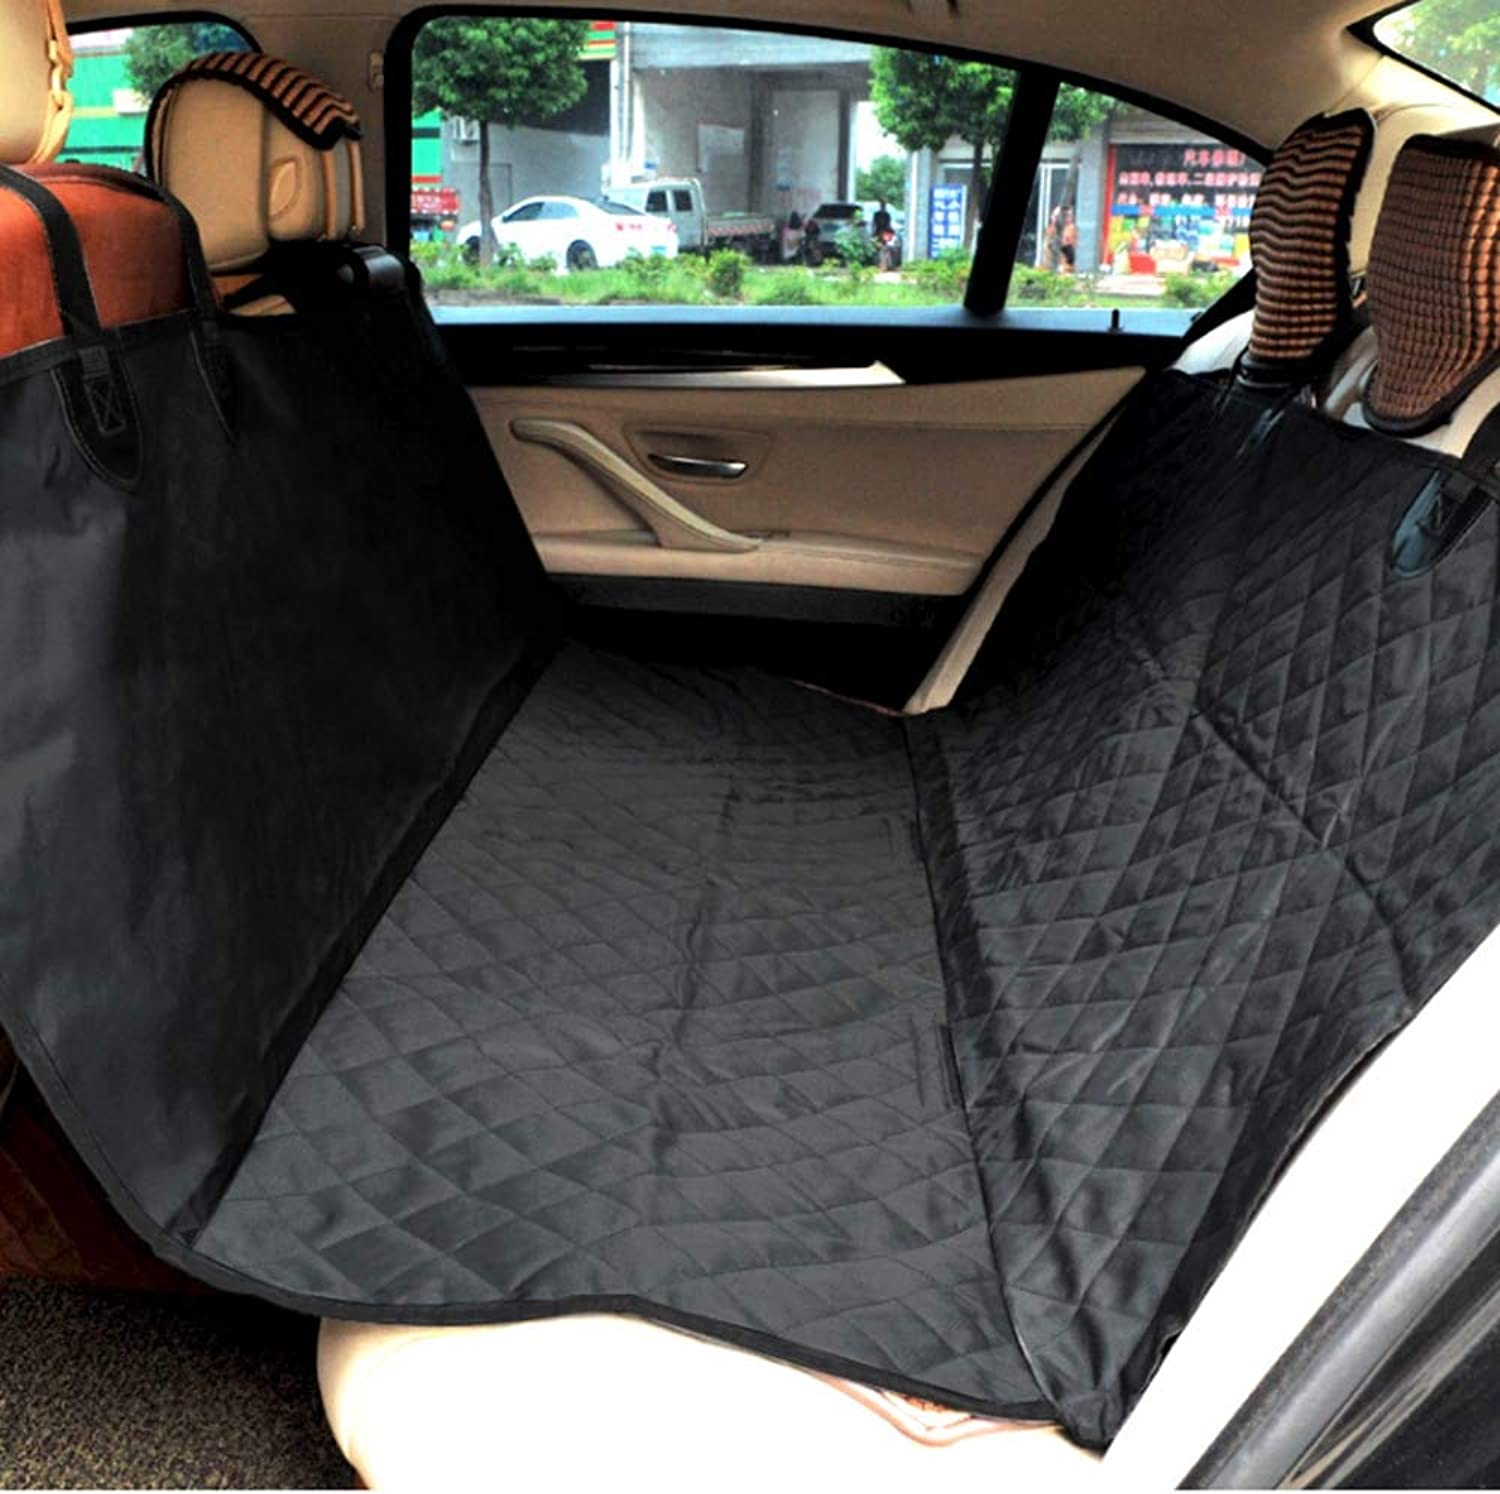 Dog Car Seat Cover, Waterproof Scratch Proof Nonslip Back Seat Cover, Washable,Dog Travel Hammock with Seat AnchorsUniversal fits All Cars,Regular